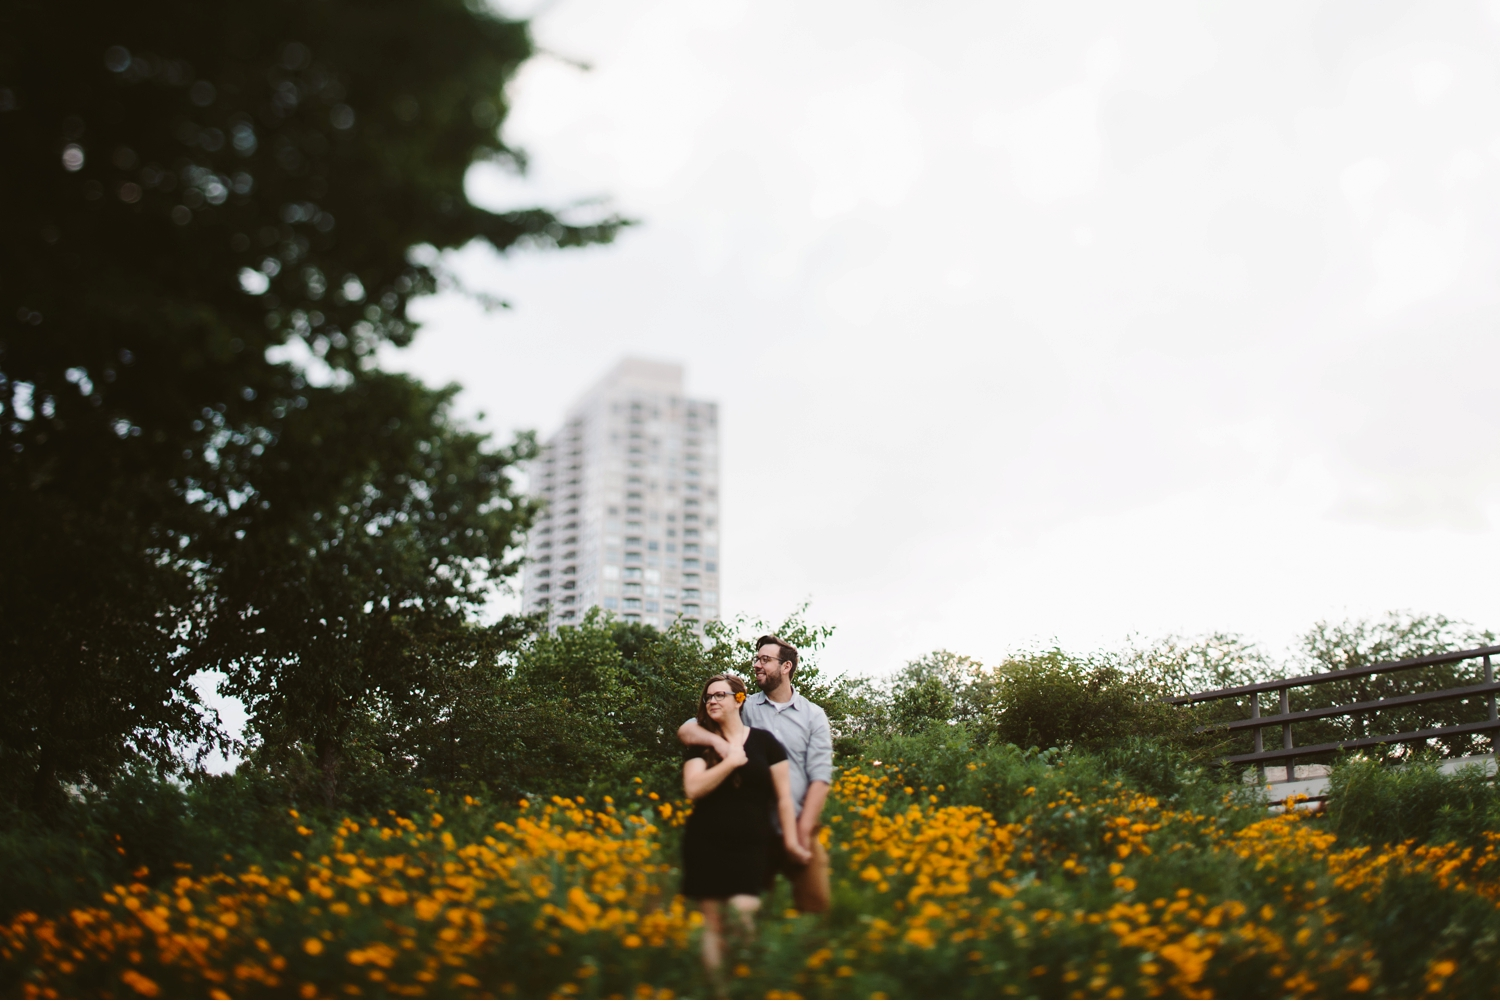 grand rapids floral engagement shoot